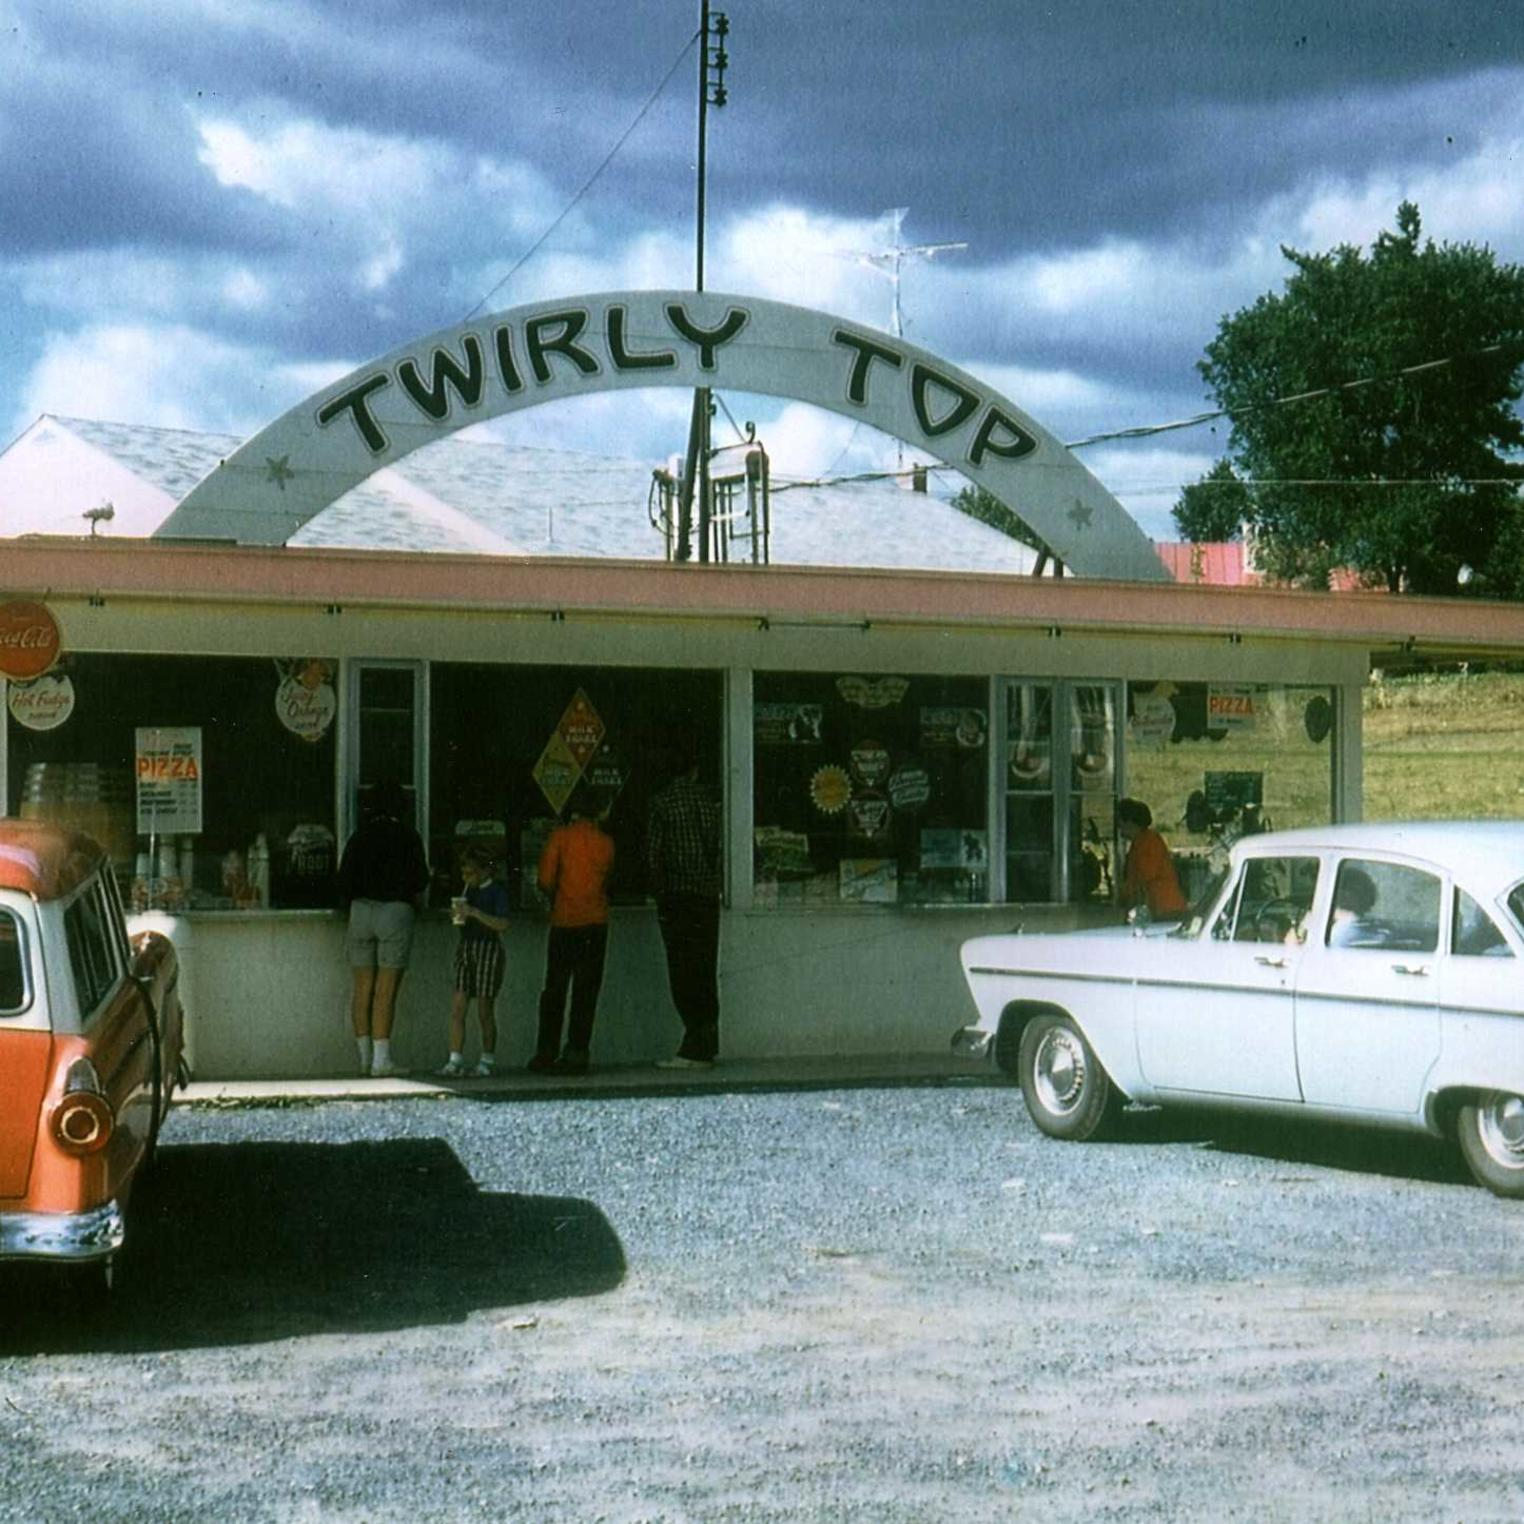 Twirly Top Circa 1950s